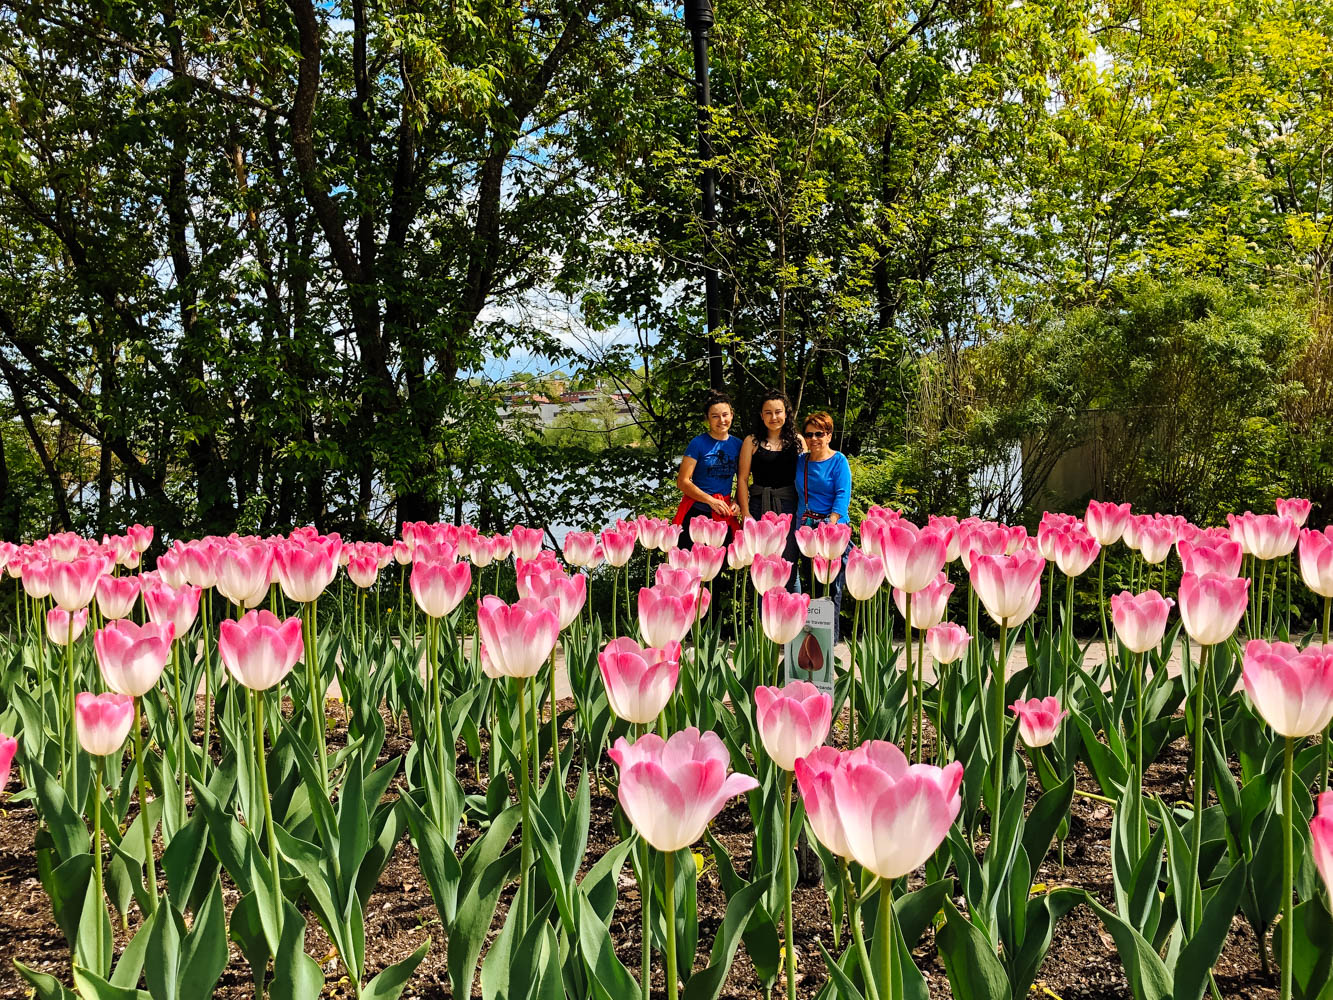 In the tulips with Mamie. Photo by Paul Brouillard.